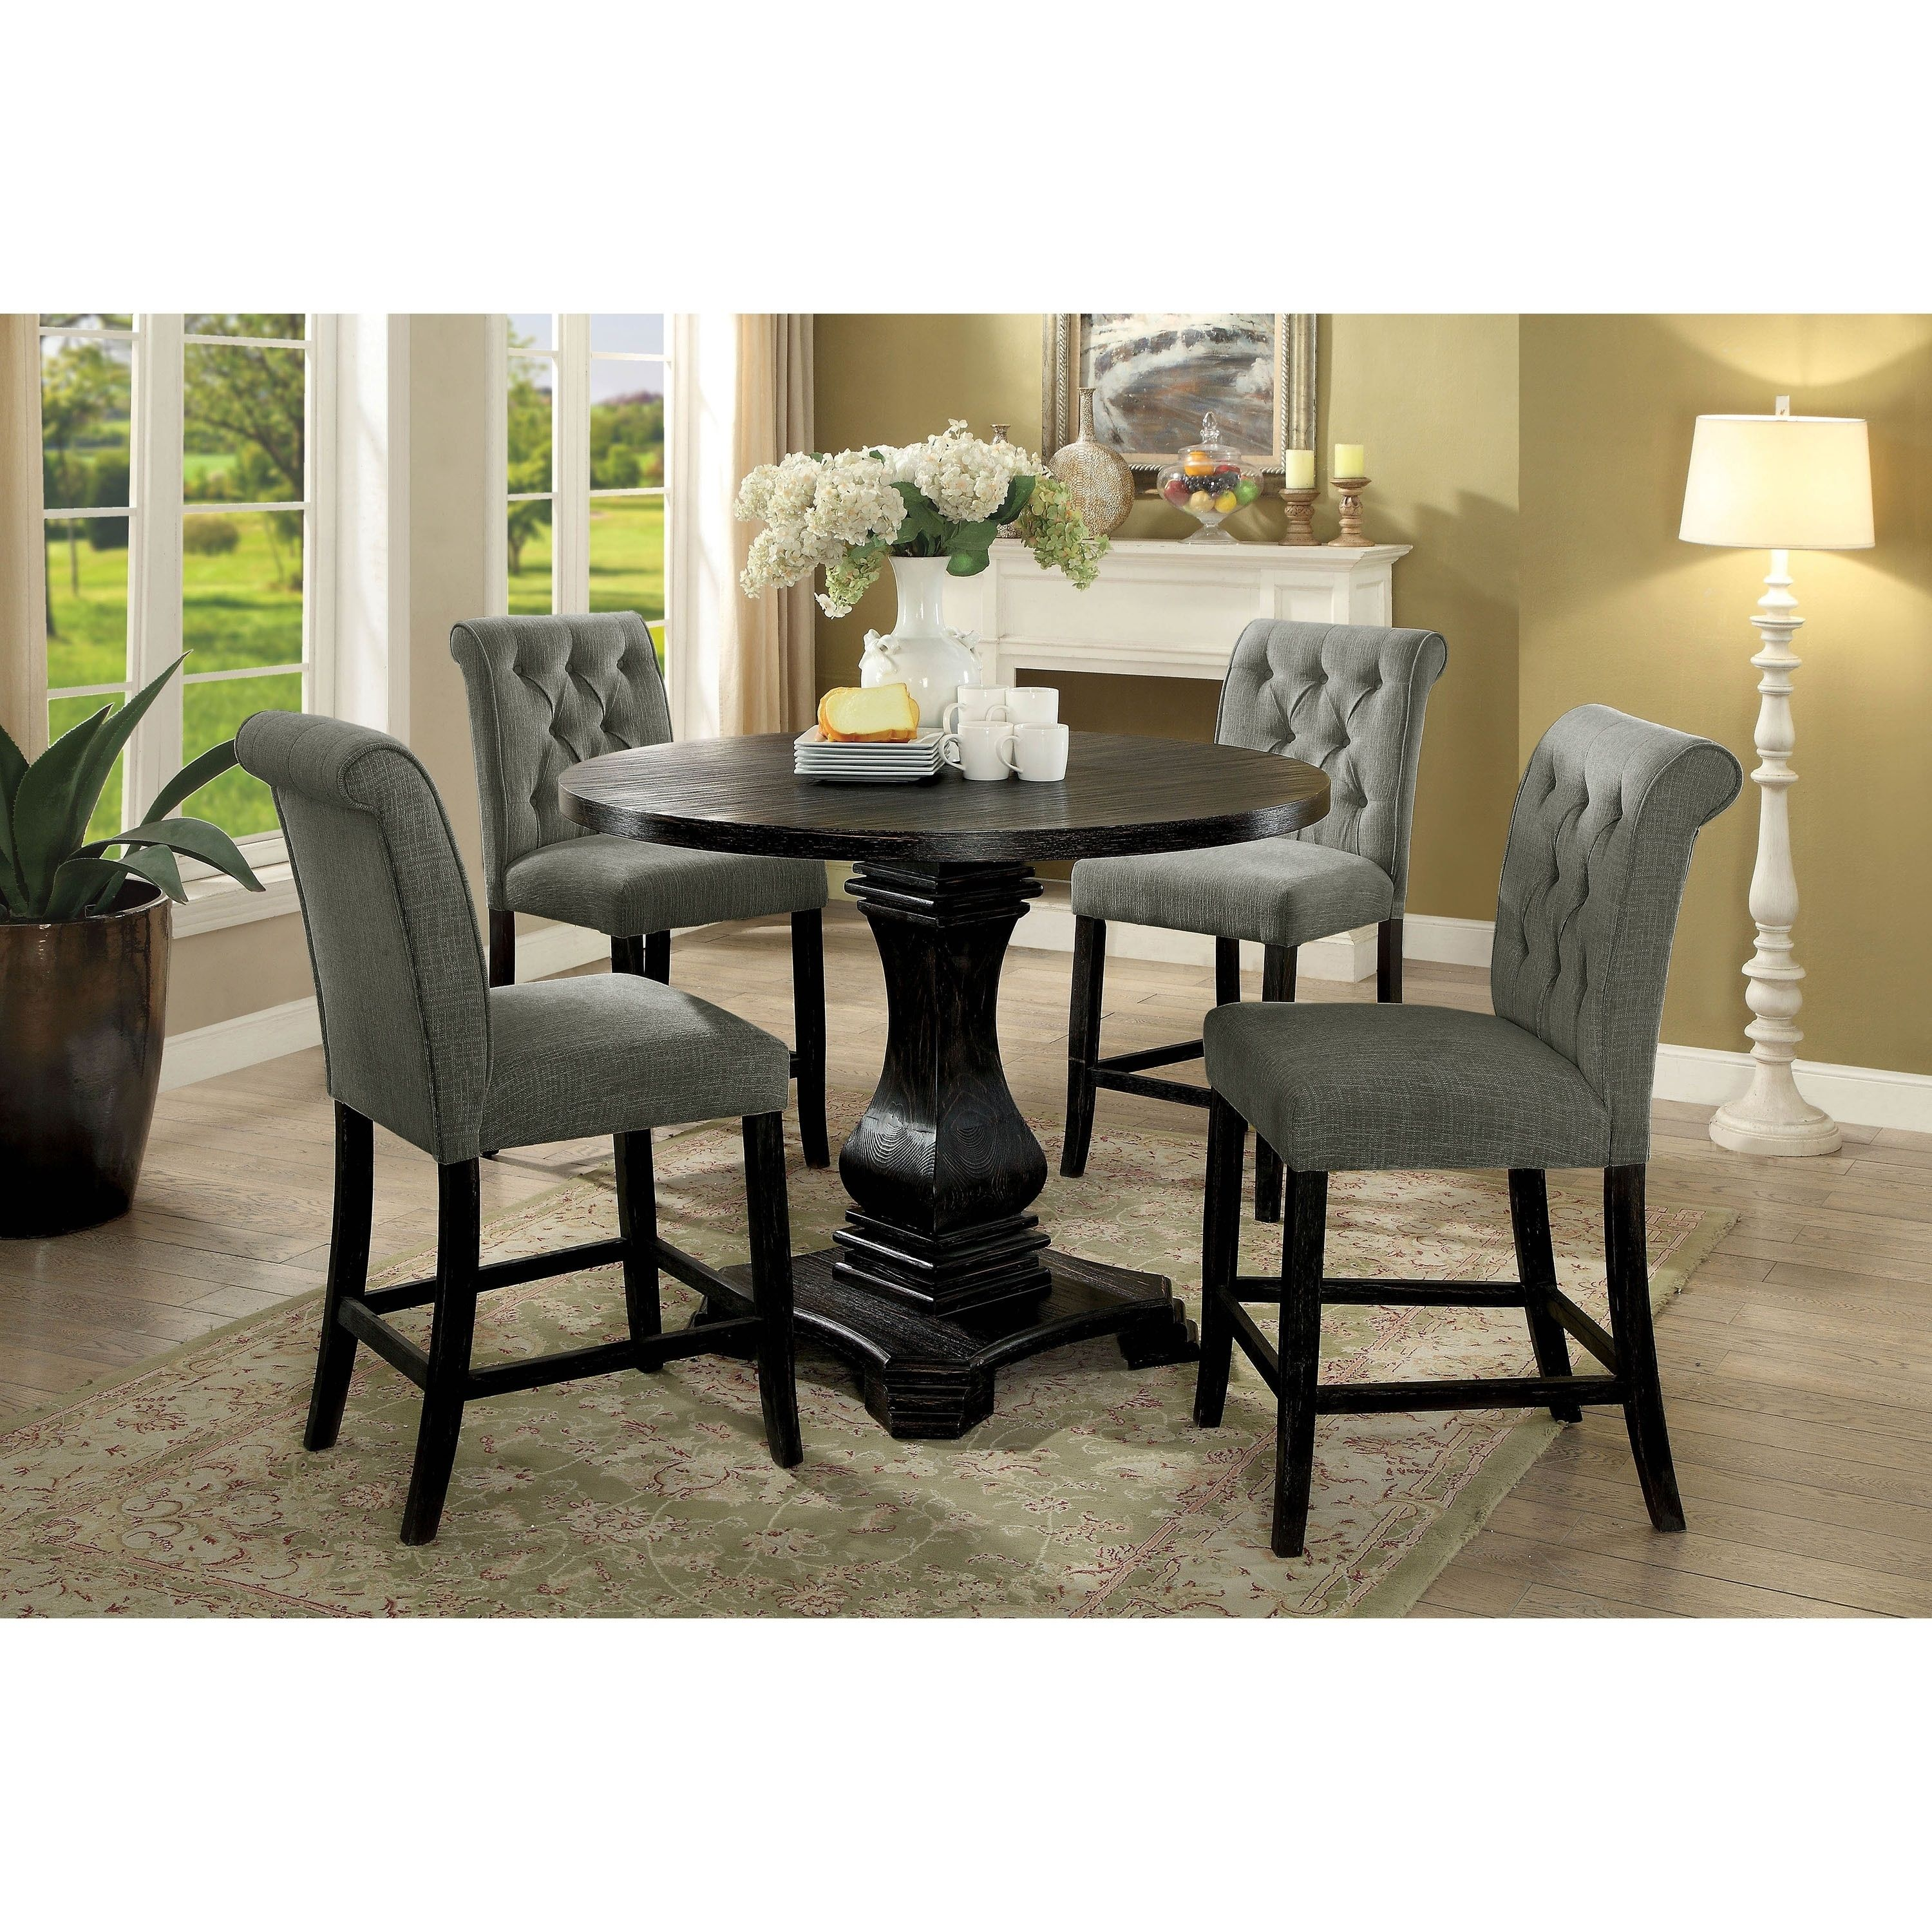 Furniture of America Melby Farmhouse Black 5Piece Counter